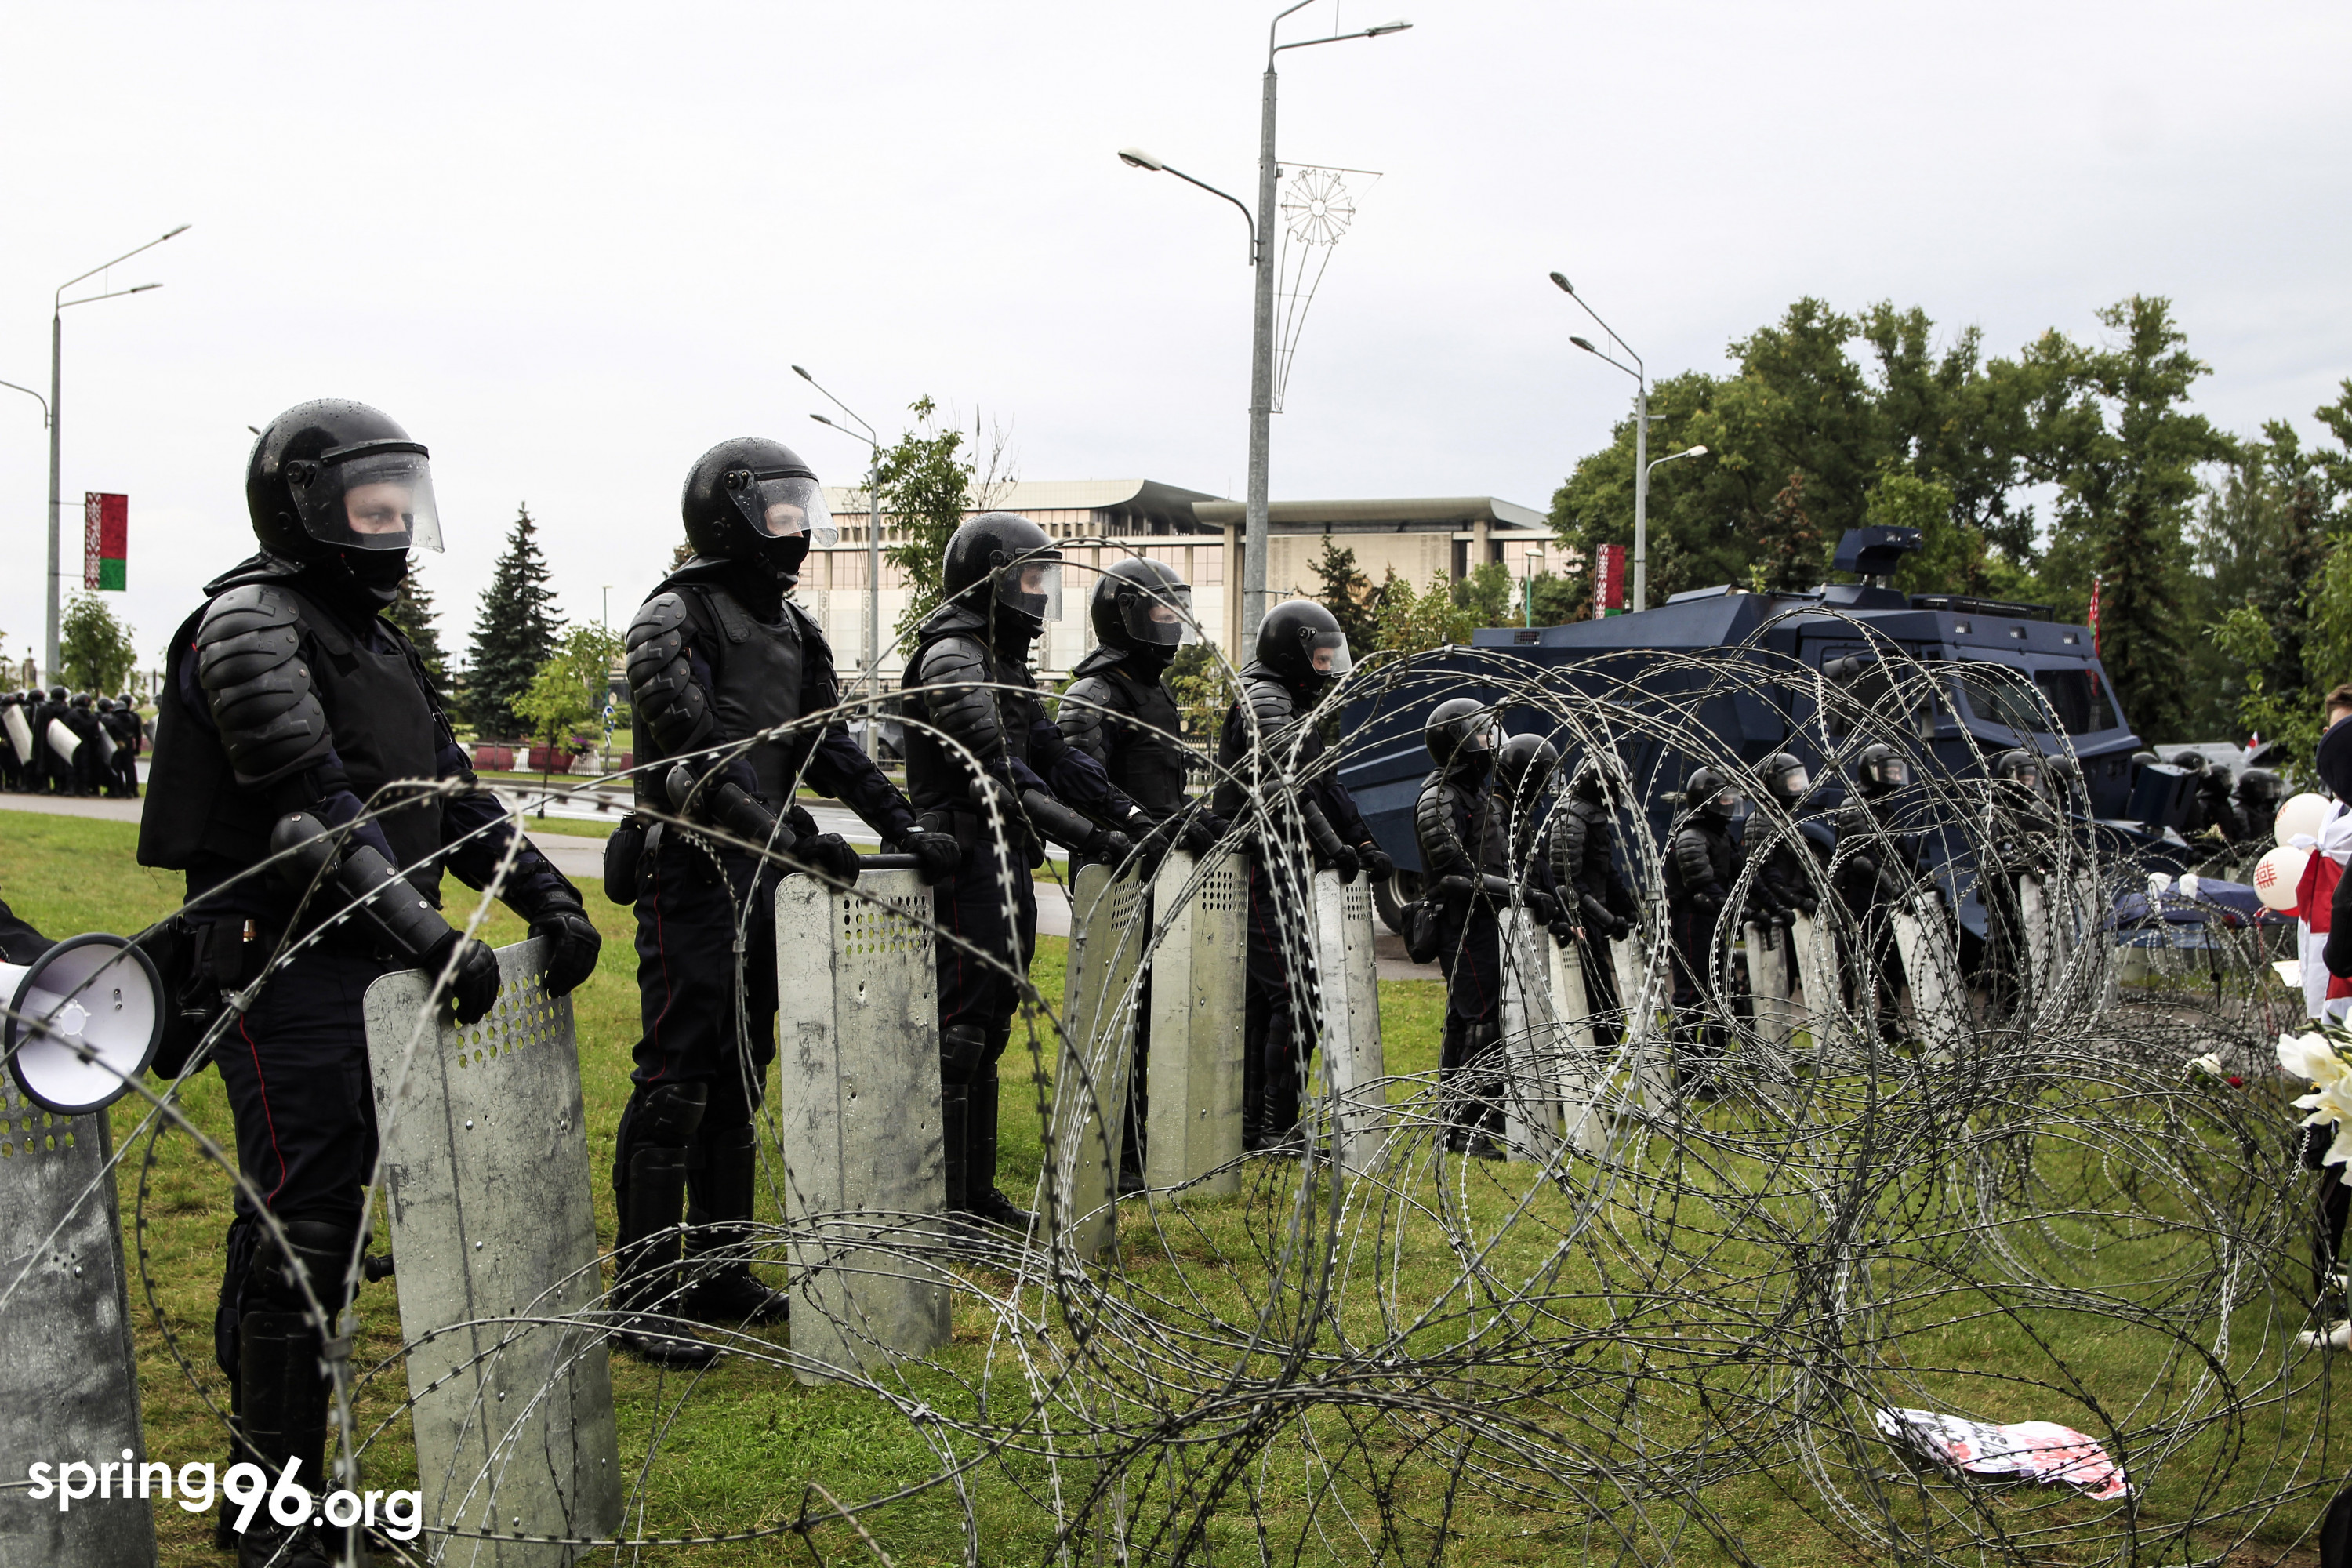 Riot police and barbed wire outside Aliaksandr Lukashenka's residence in Minsk during a peaceful protest on September 6, 2020